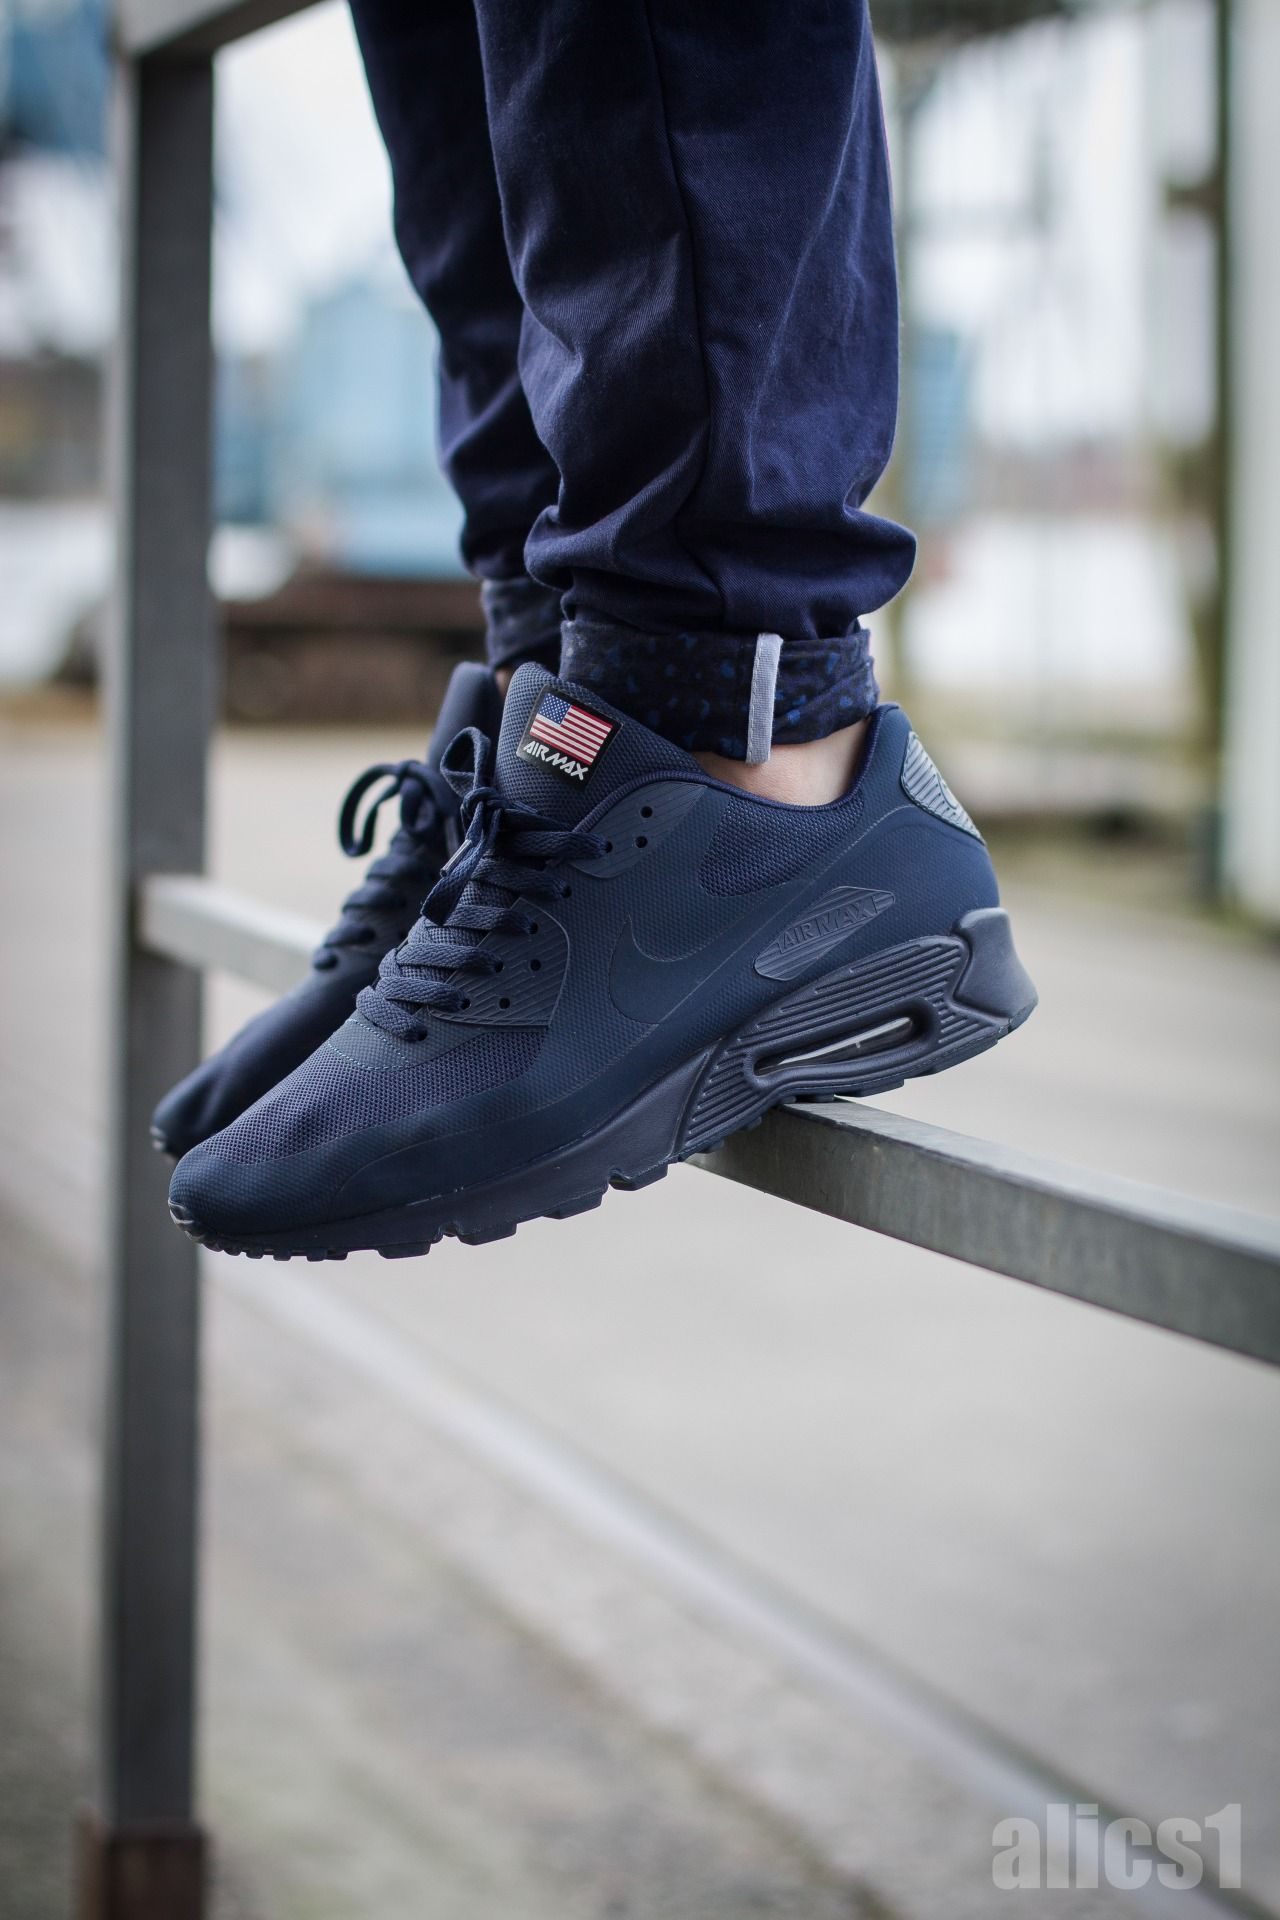 """new style a33c6 cbab9 alics1  """" Nike Air Max 90  Independence Day  QS IG  alics1 """""""